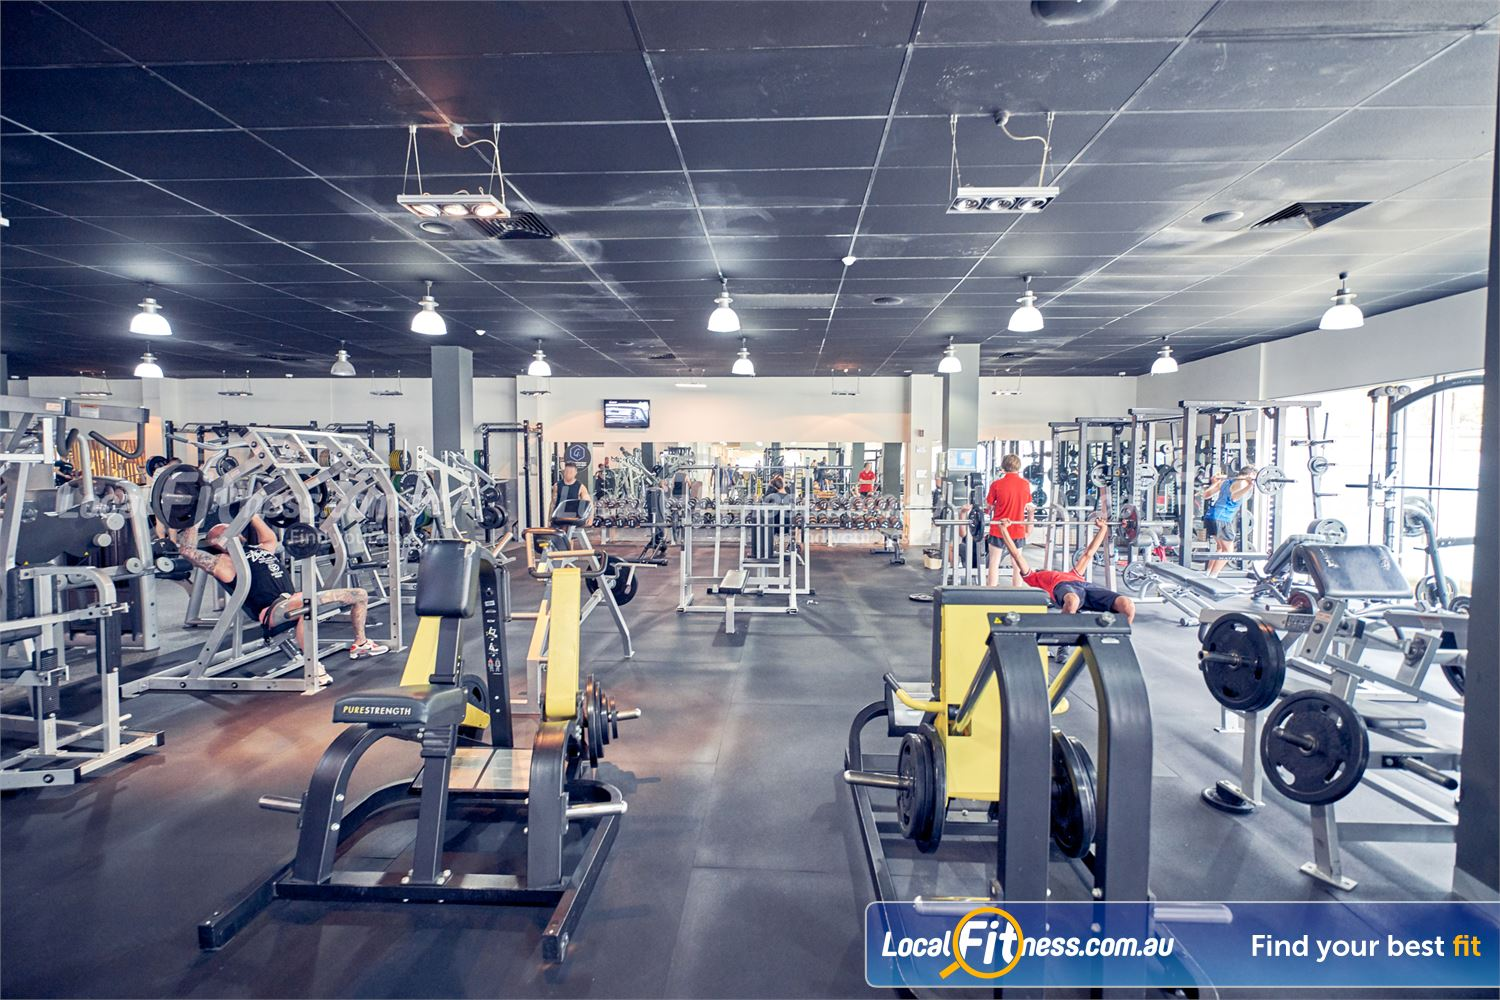 Goodlife Health Clubs Knox City Wantirna South Our Knox City gym provides heavy duty plate loading equipment.